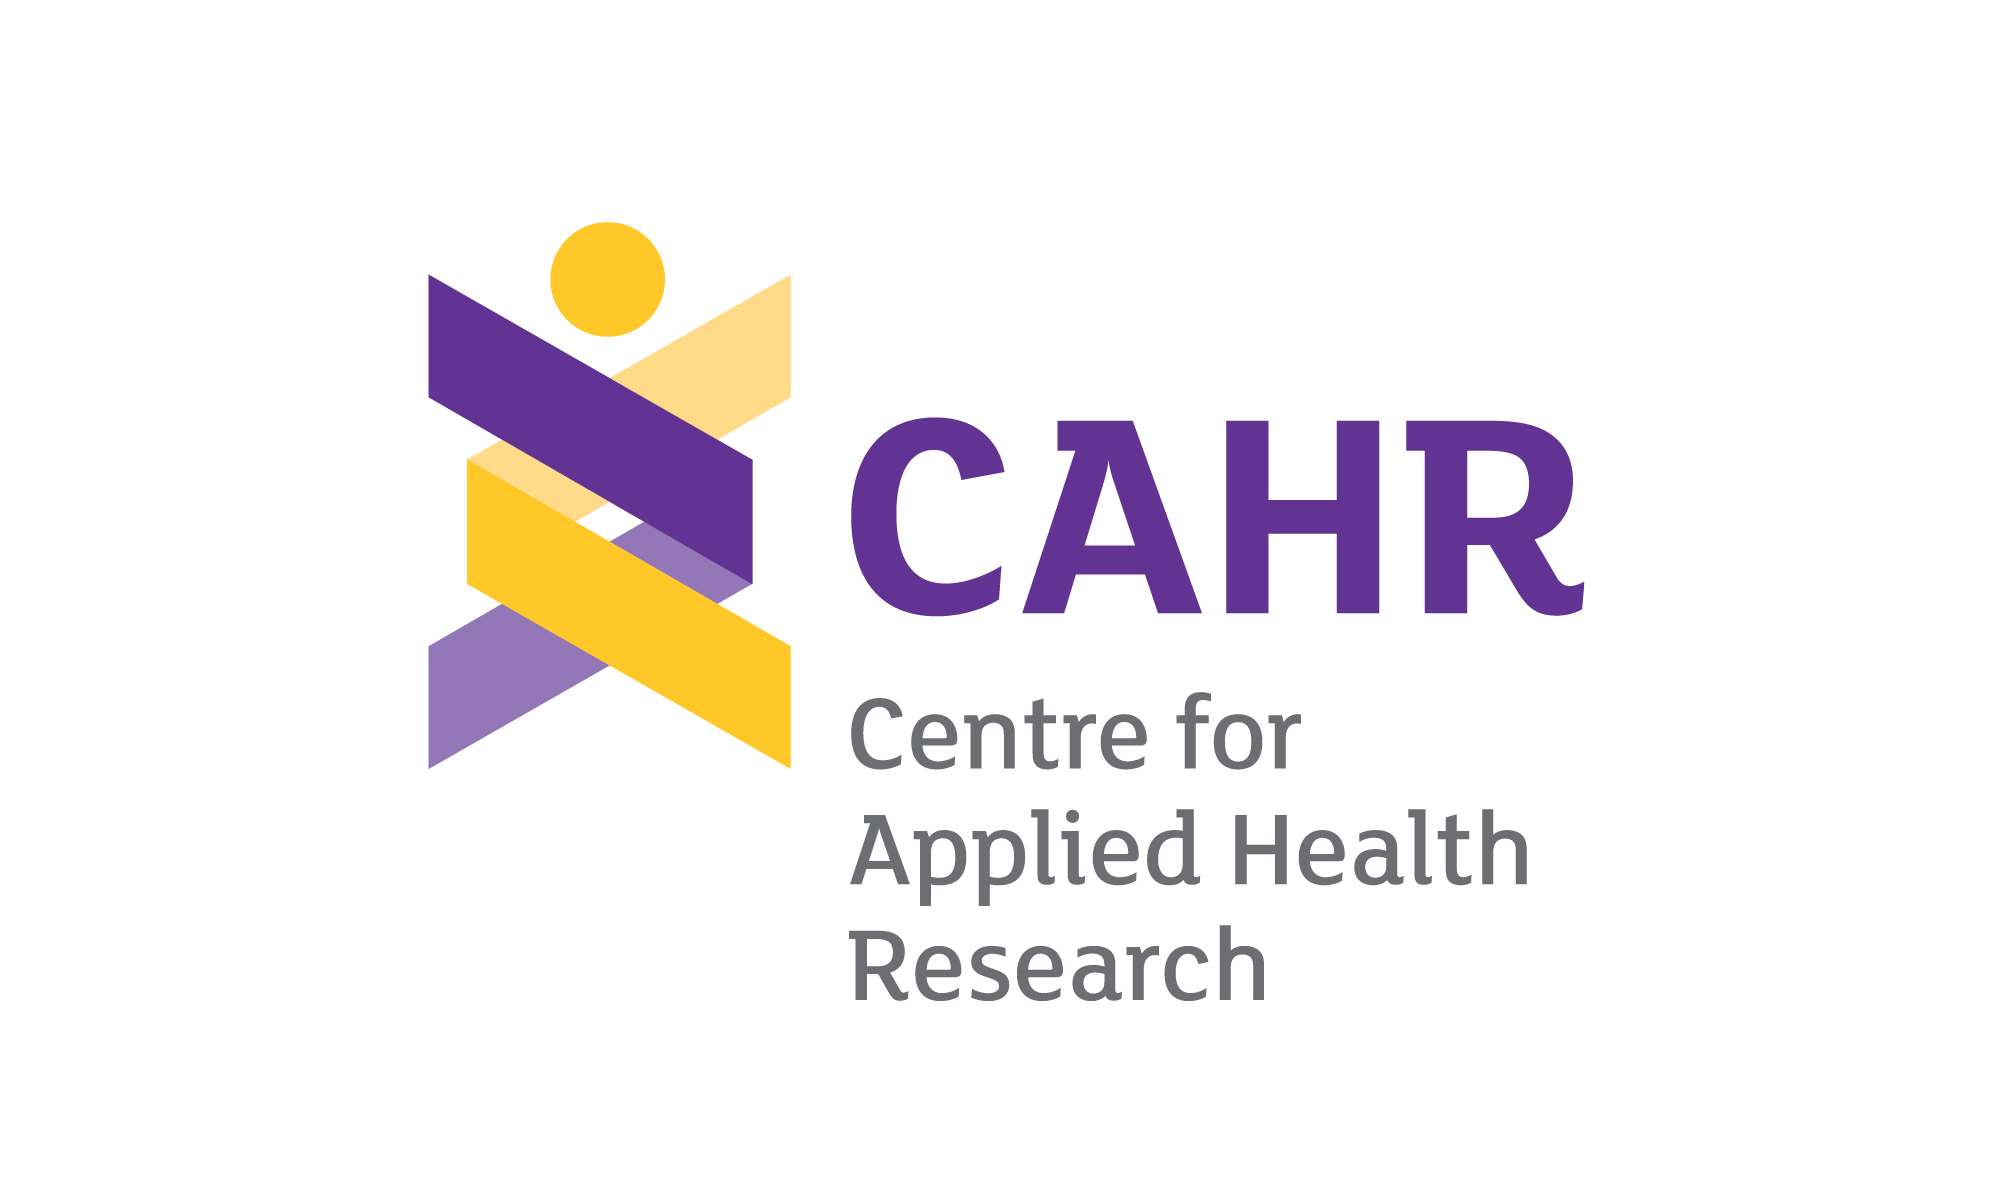 NorthBEAT is supported by the Centre for Applied Health Research at St. Joseph's Care Group in Thunder Bay, Ontario.